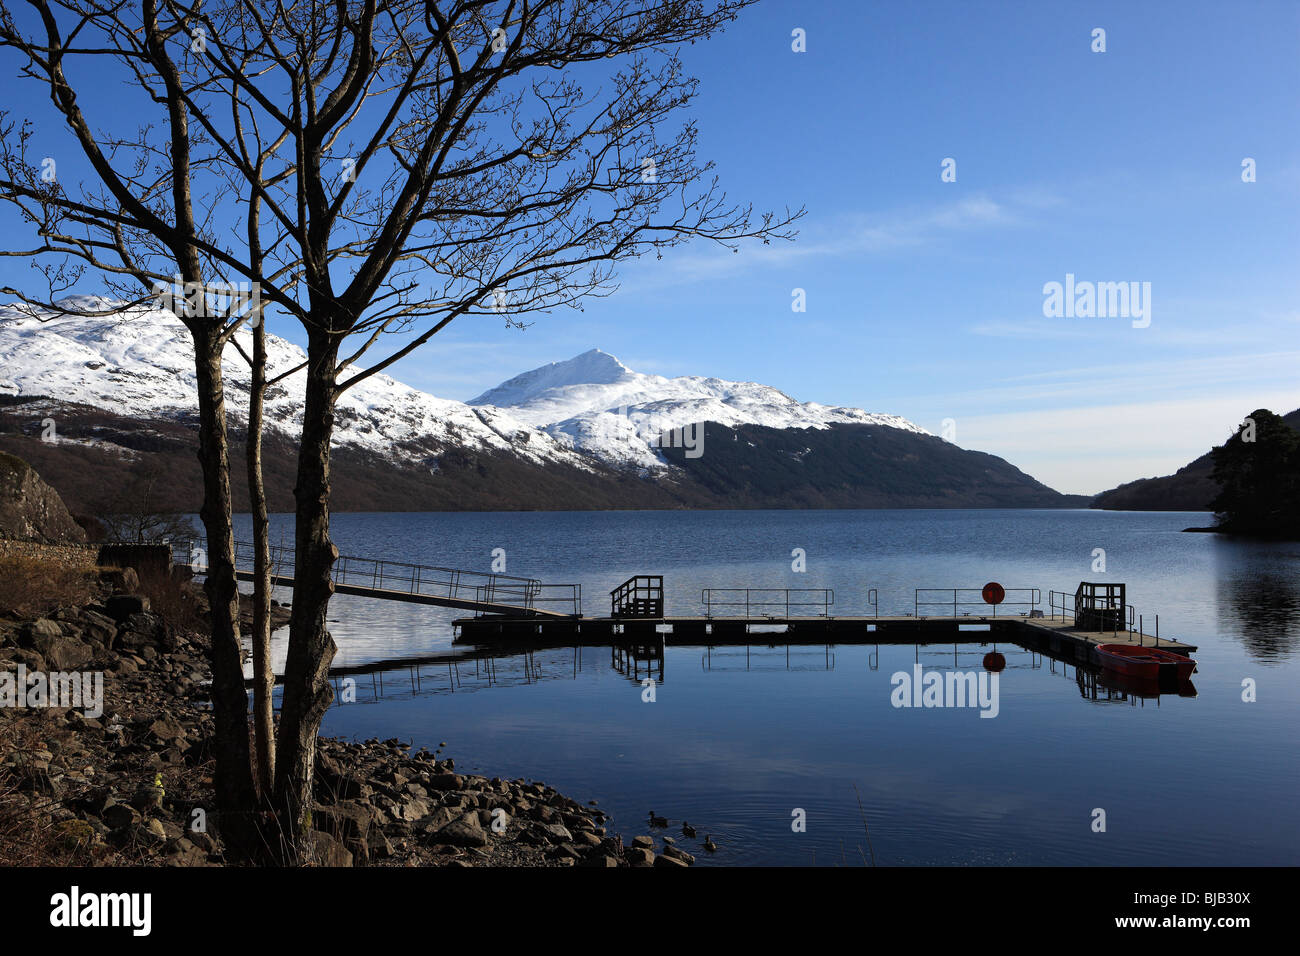 Loch Lomond from Inveruglas with a snow covered Ben Lomond in the background - Stock Image